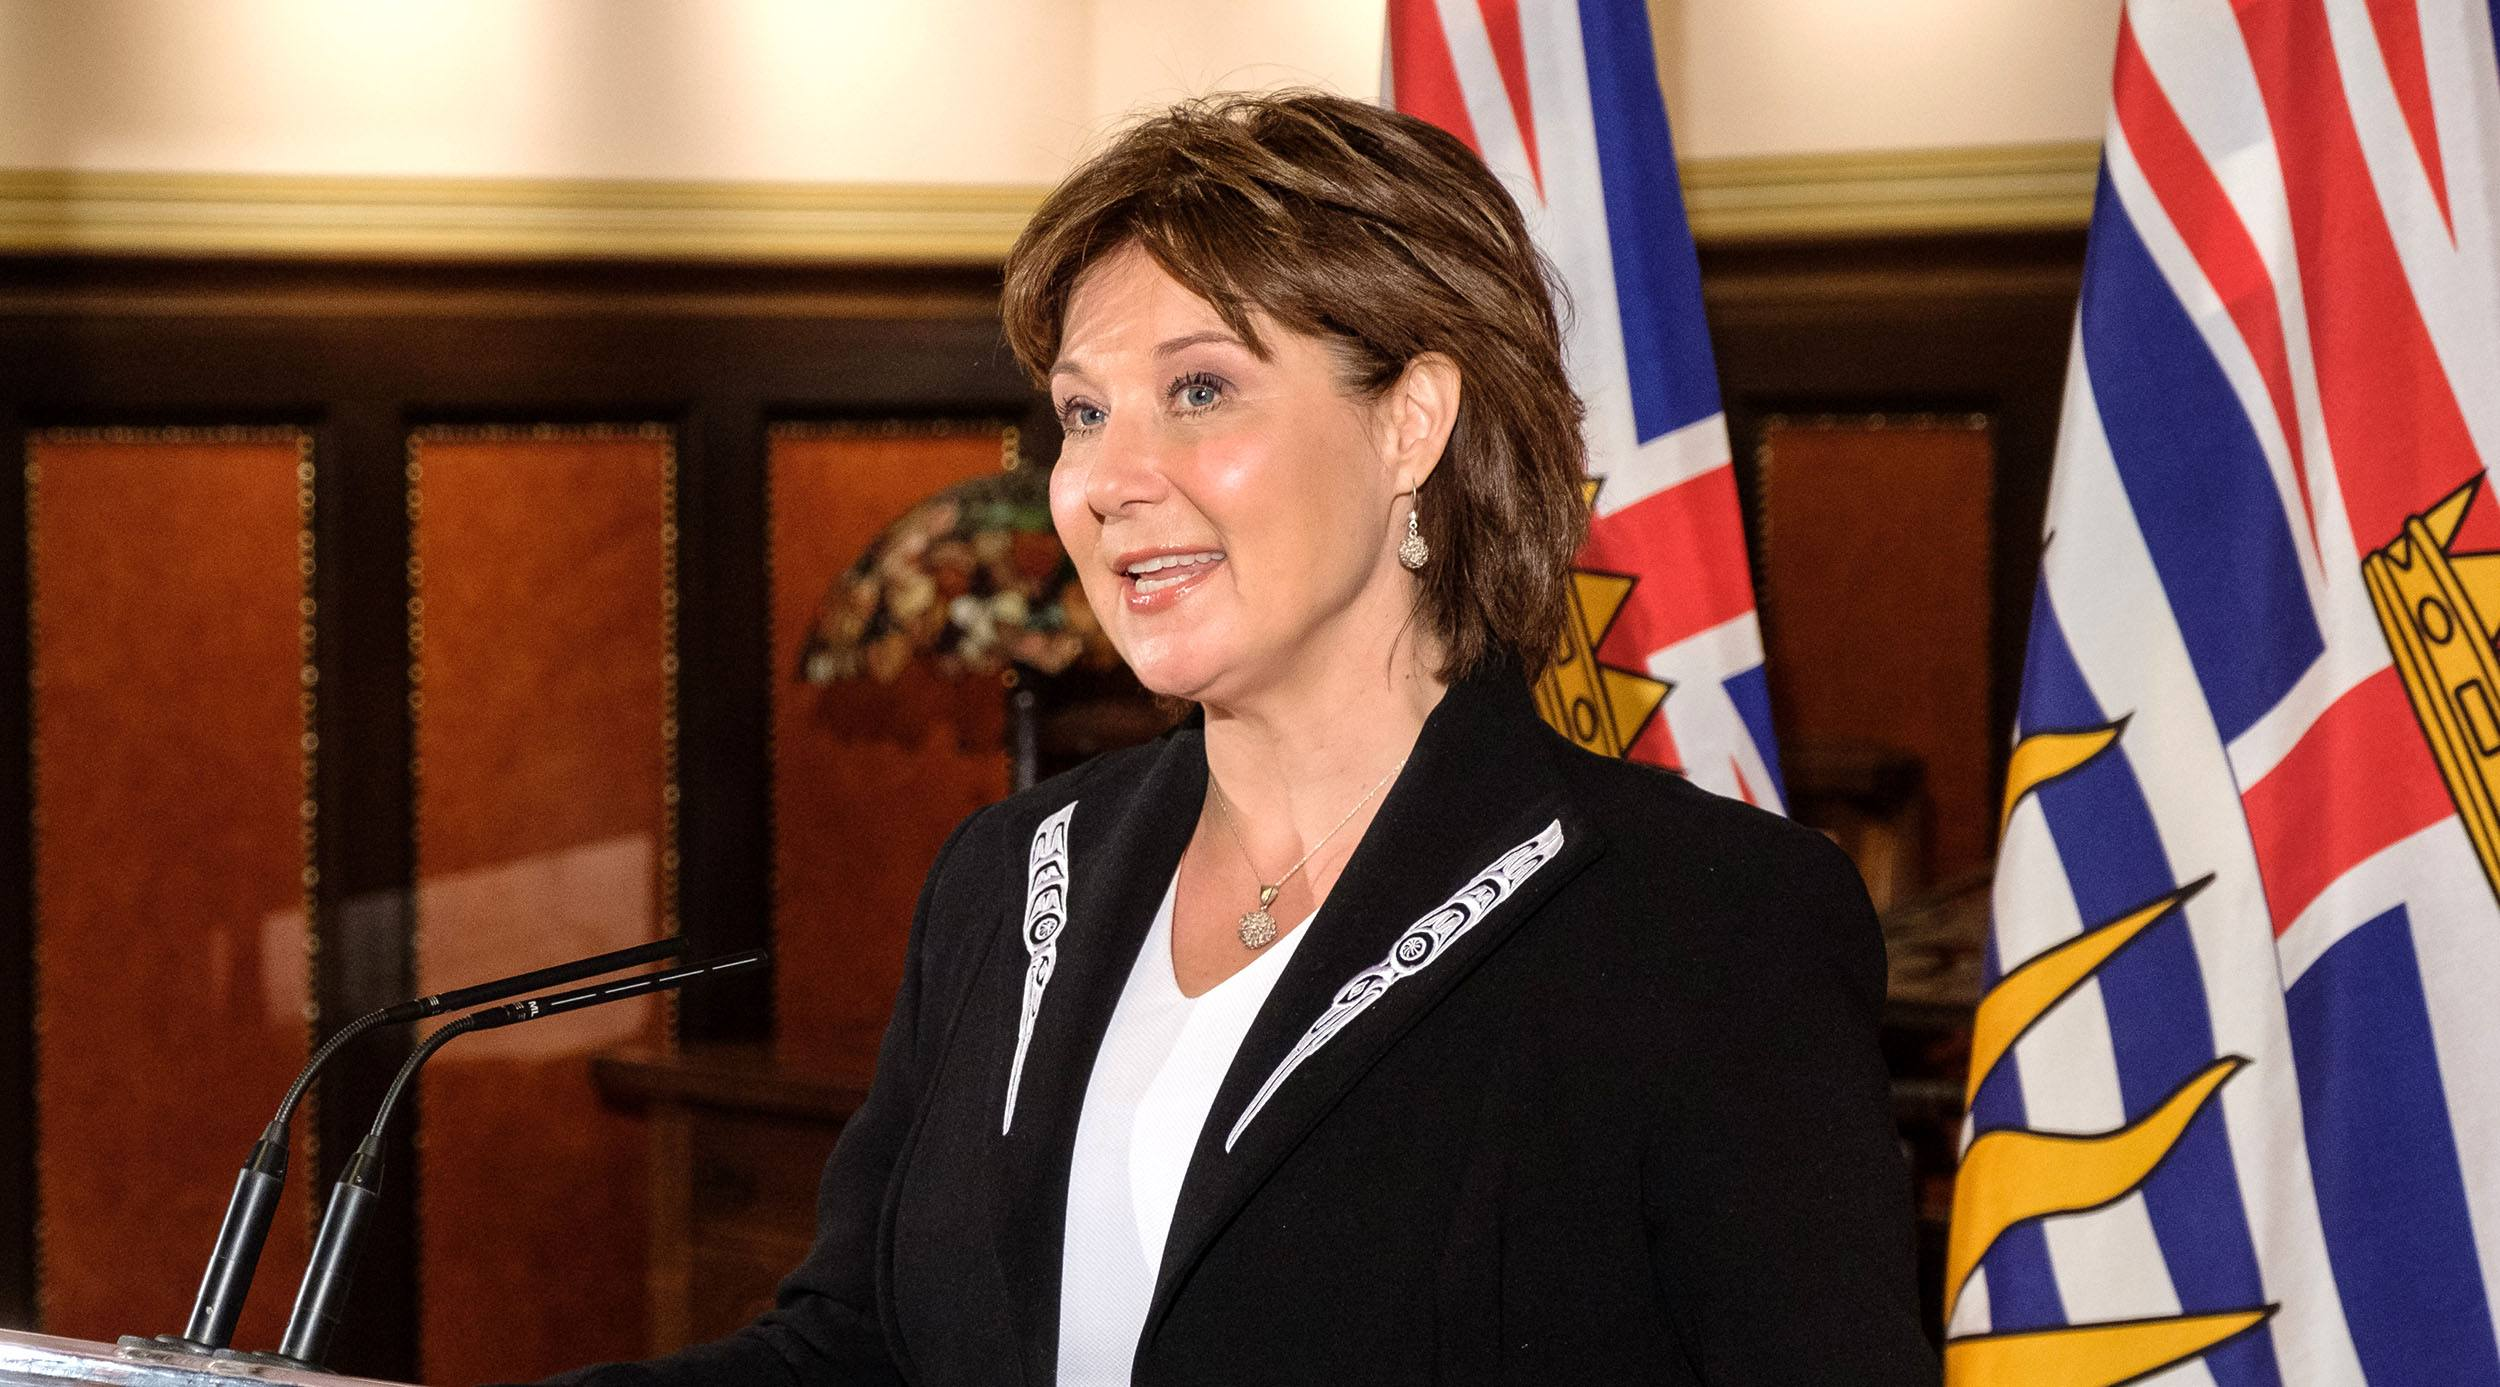 BC Premier Christy Clark after she and her Executive Council were formally sworn in by Lt.-Gov. Judith Guichon on June 12, 2017. (Province of BC/Flickr)